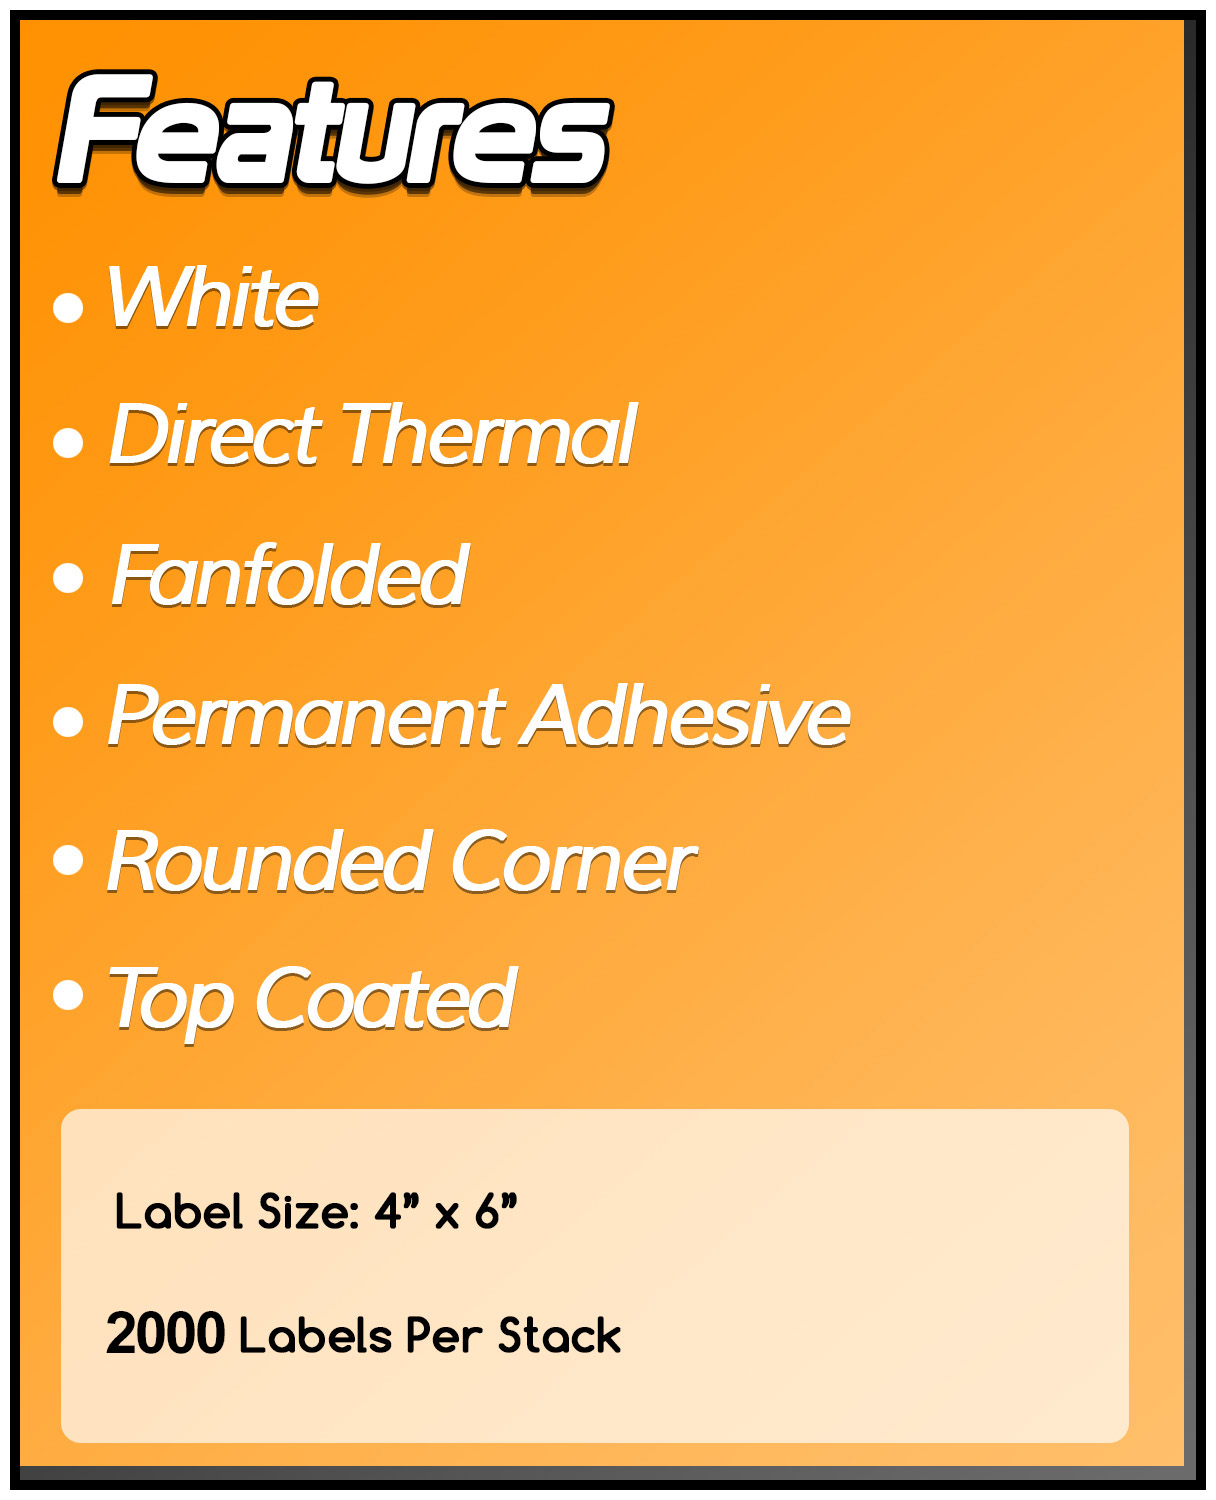 4 x 6 Fanfold Zebra Compatible Direct Thermal Labels (1 Carton)